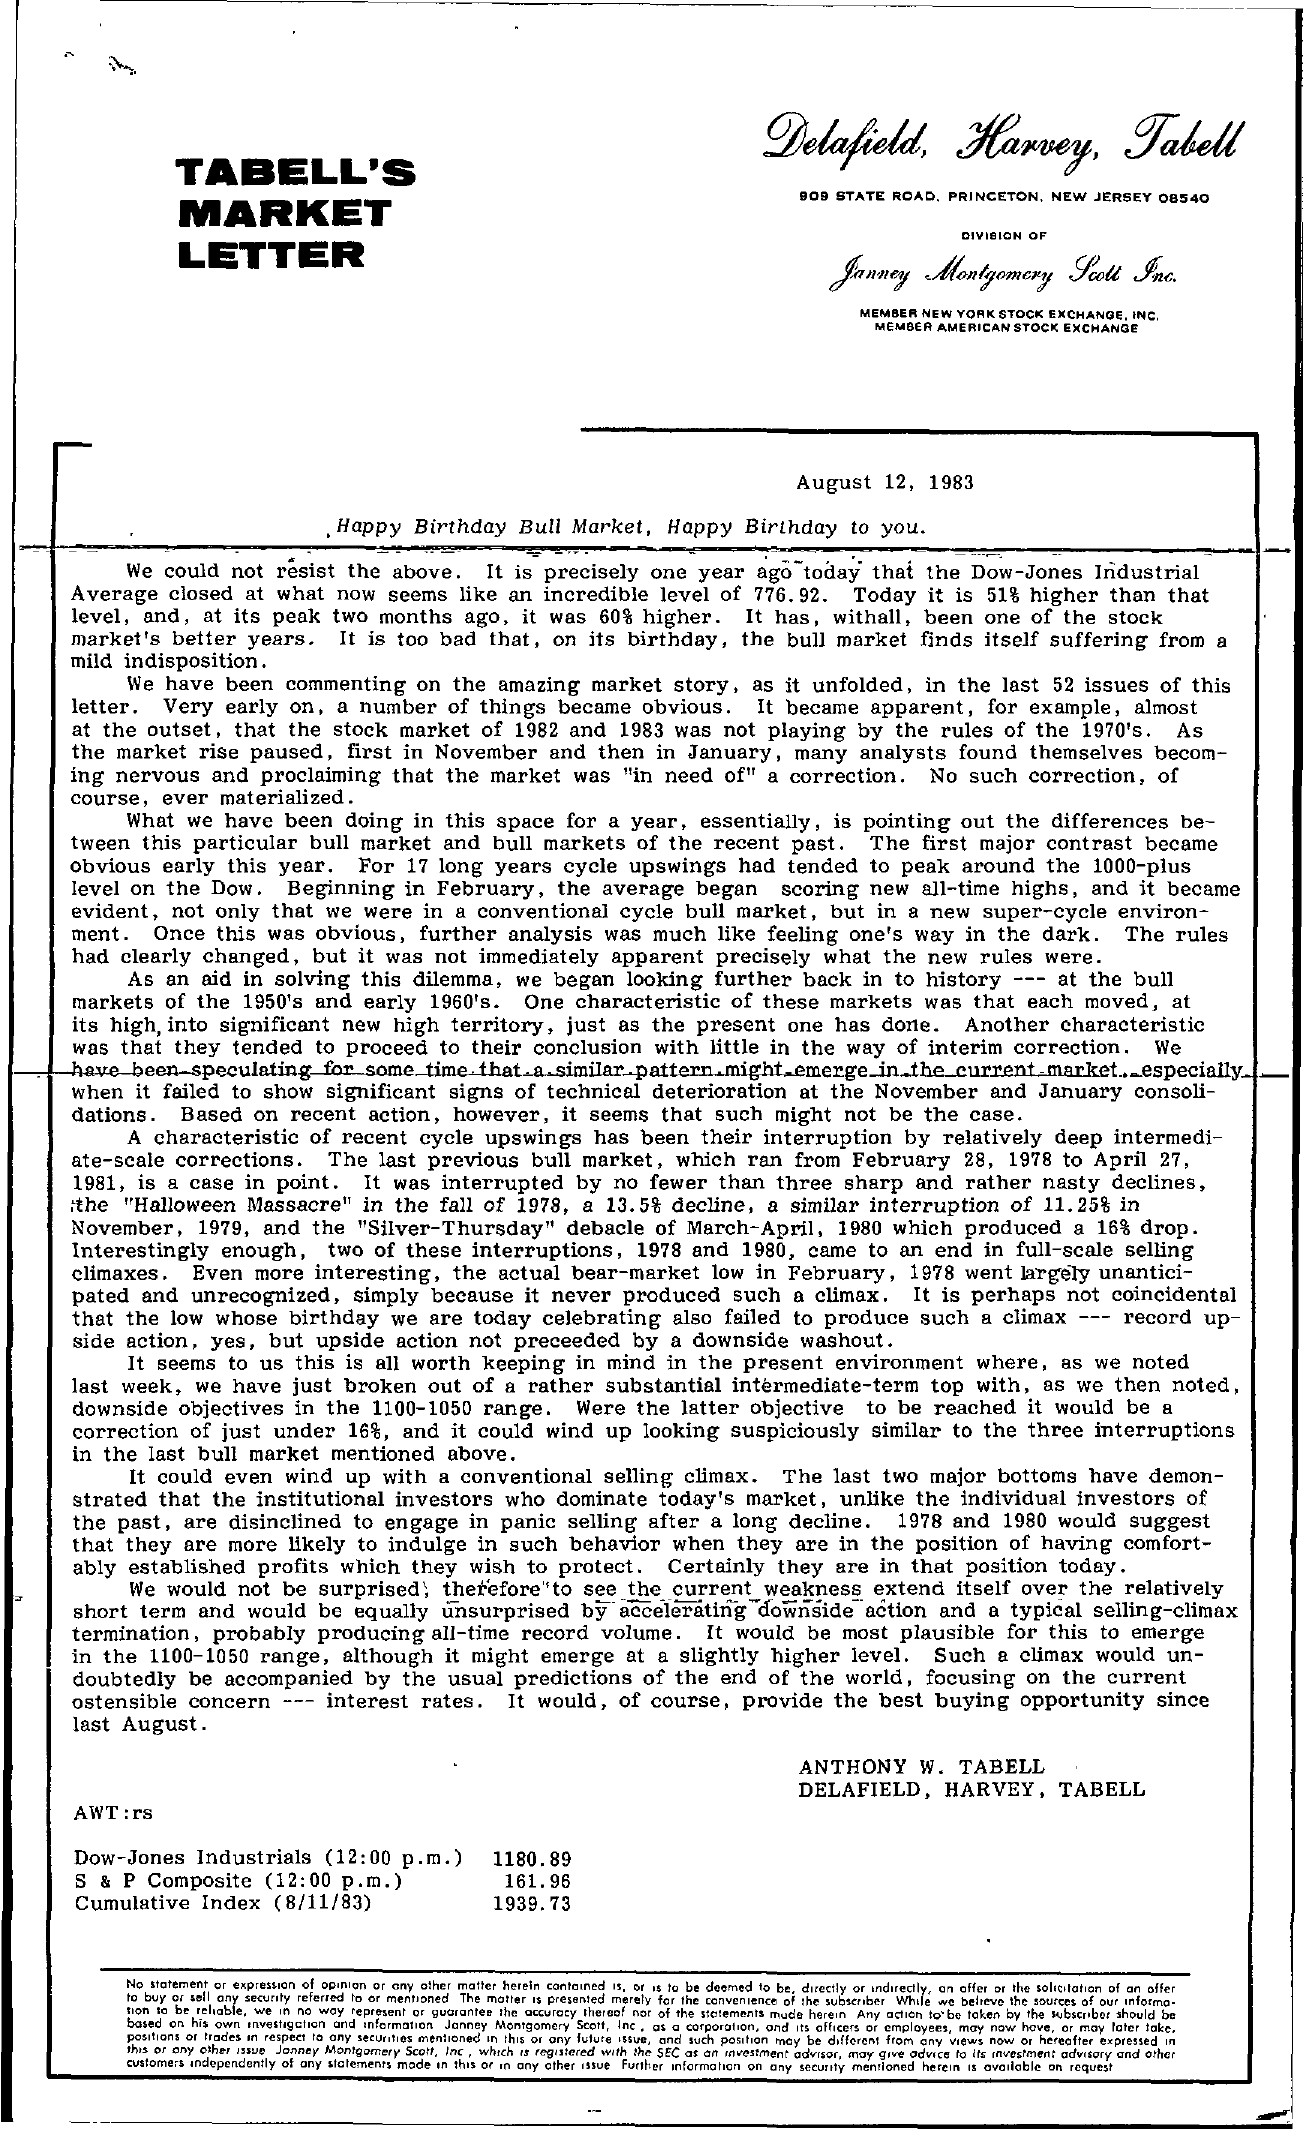 Tabell's Market Letter - August 12, 1983